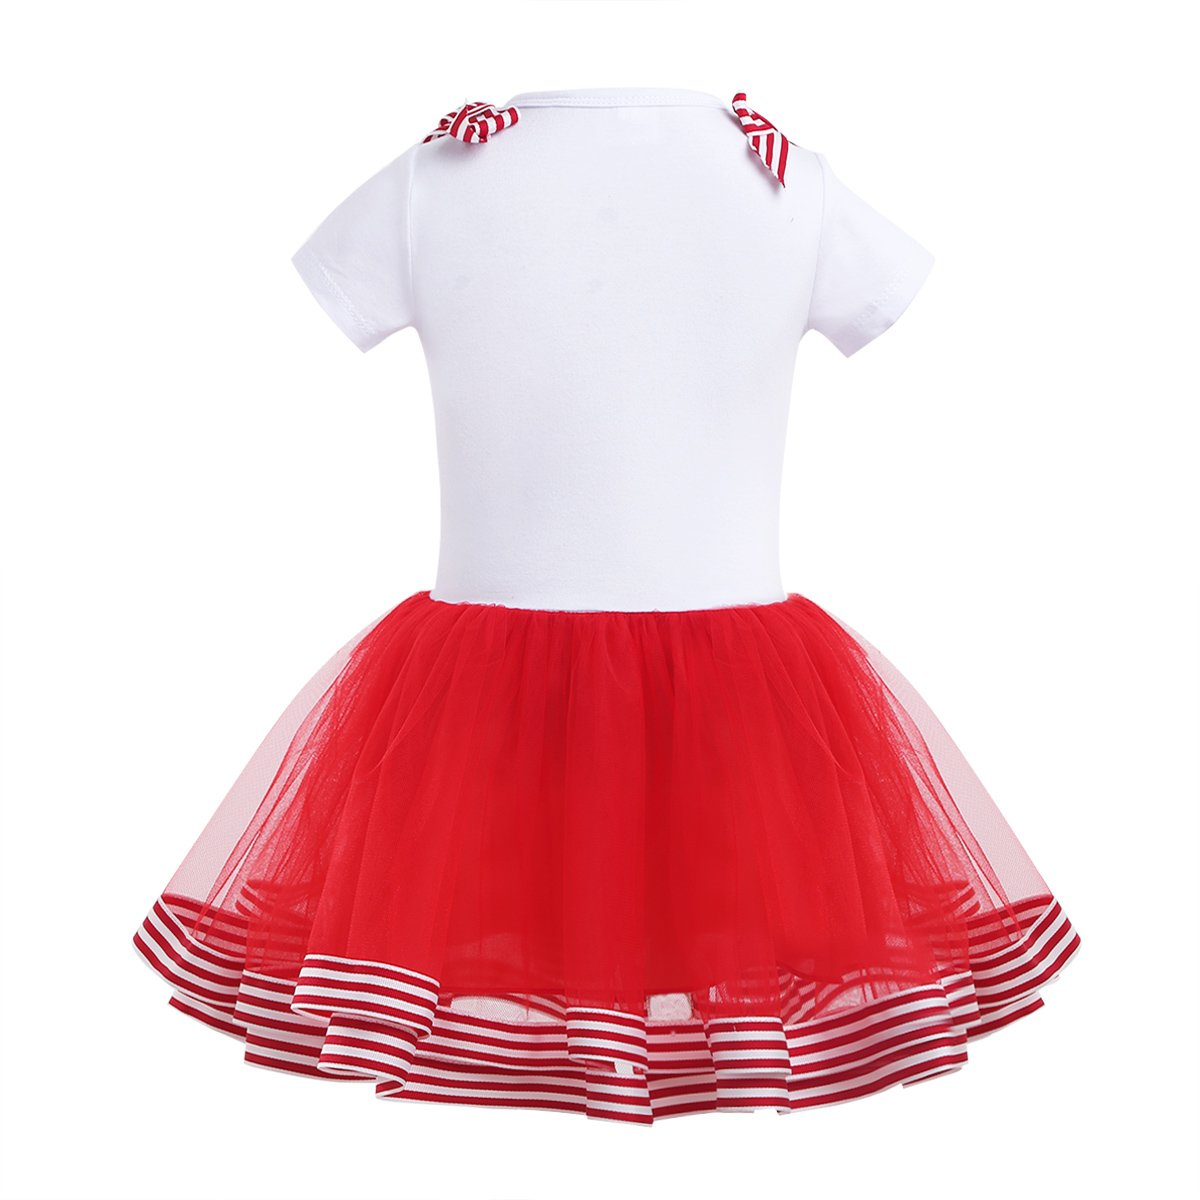 MSemis Kids Girls Christmas Outfits Short Sleeves Bowknot Candy Cane Cutie Printed T-Shirt with Mesh Tutu Skirt Set 2-5 Years